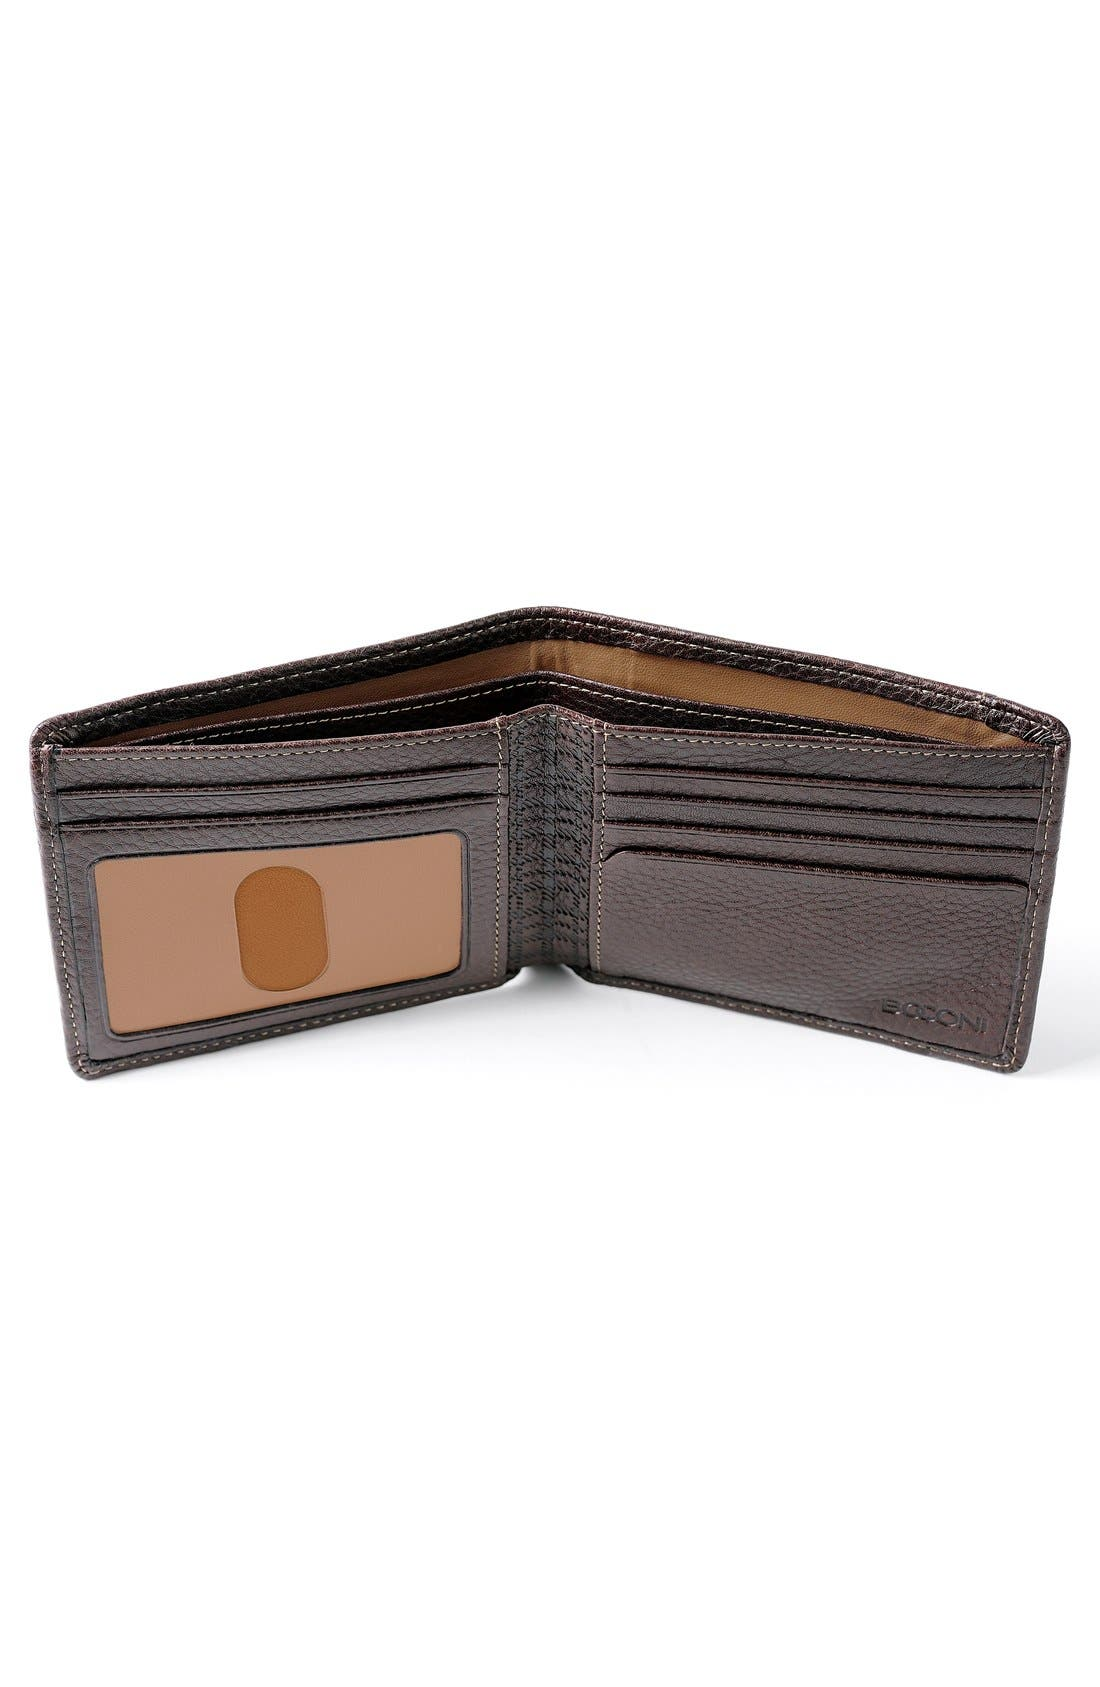 'Tyler' RFID Wallet,                             Alternate thumbnail 2, color,                             Coffee